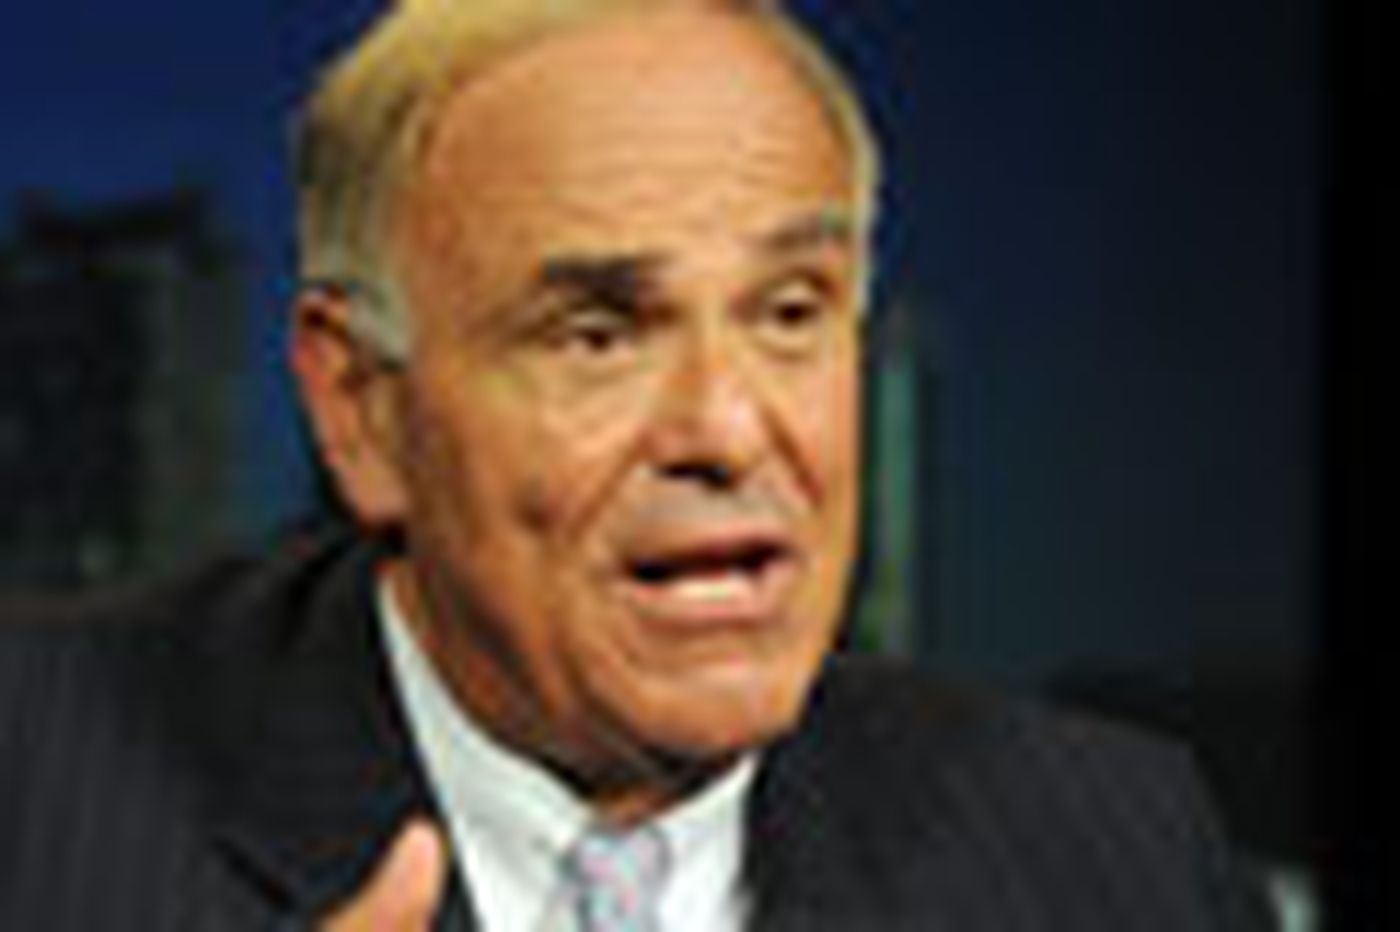 PhillyDeals: Rendell approves of some Christie, Corbett cuts